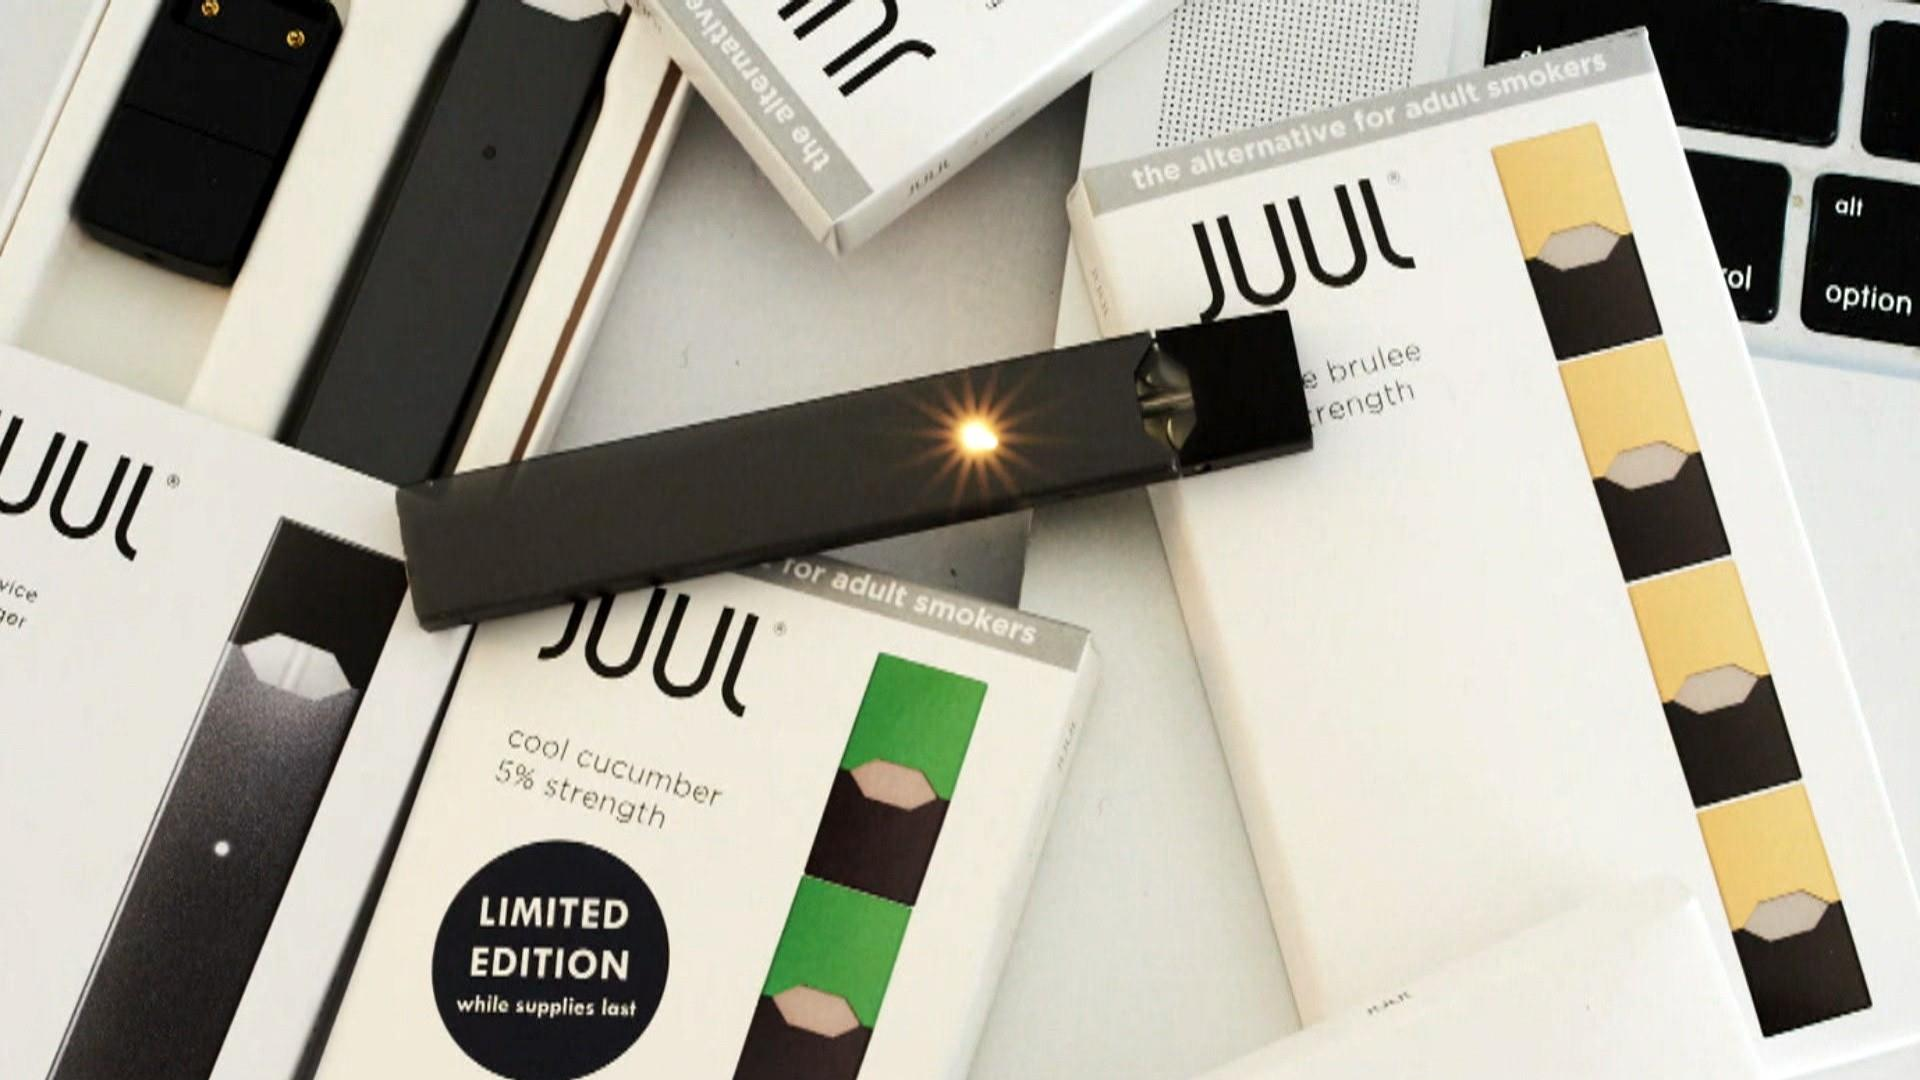 Juul illegally marketed products as safer than cigarettes, FDA says